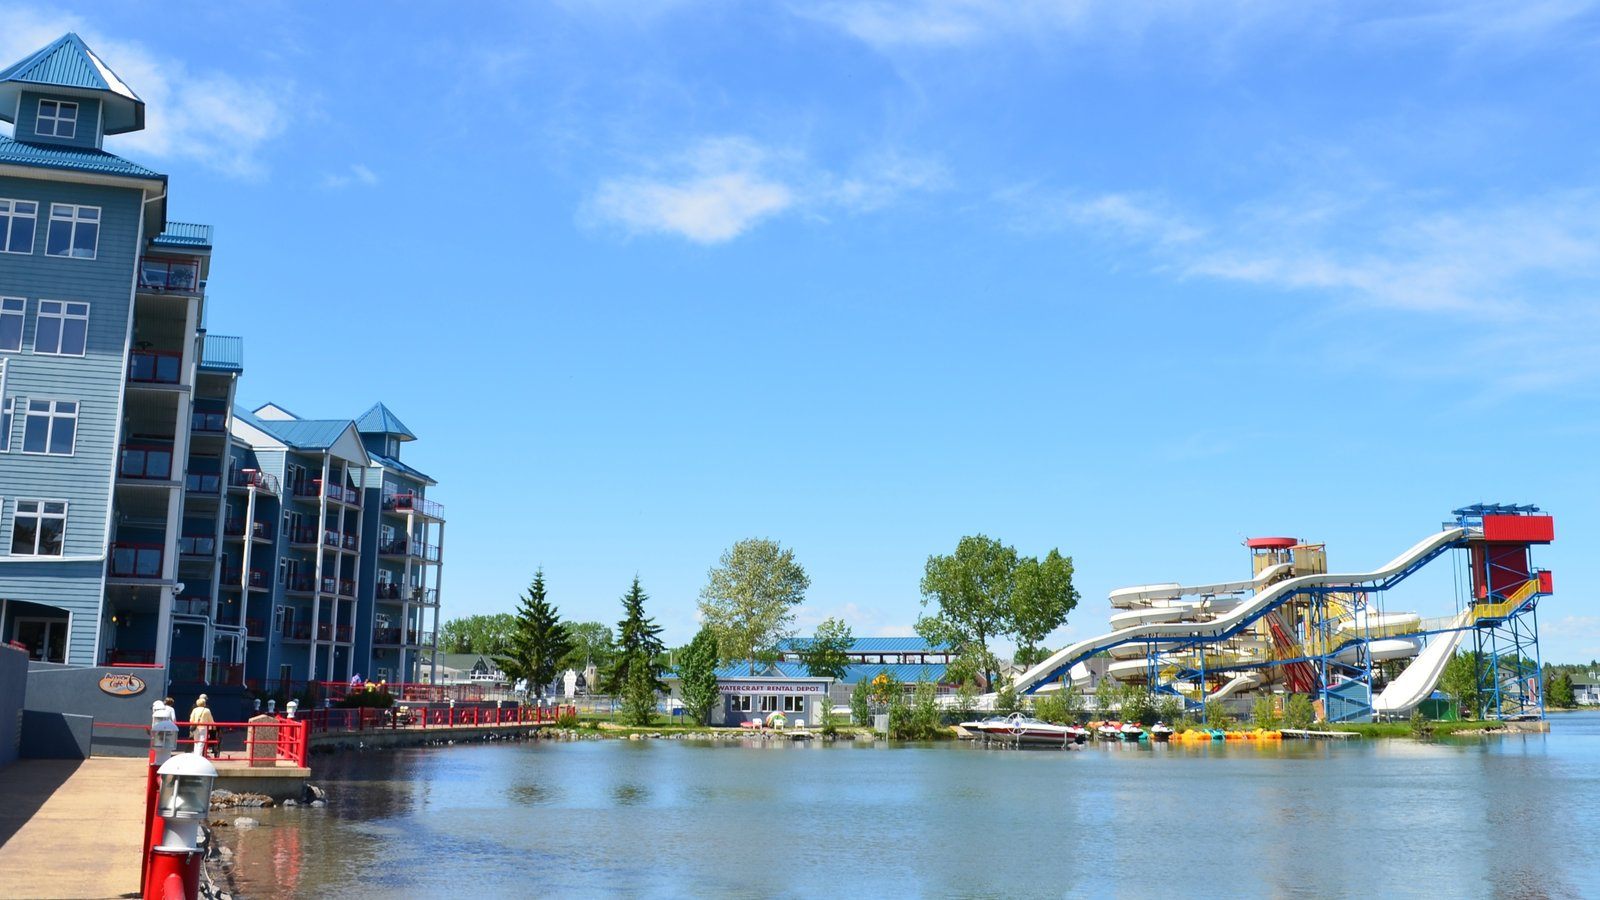 Red Deer which includes a lake or waterhole, a water park and rides